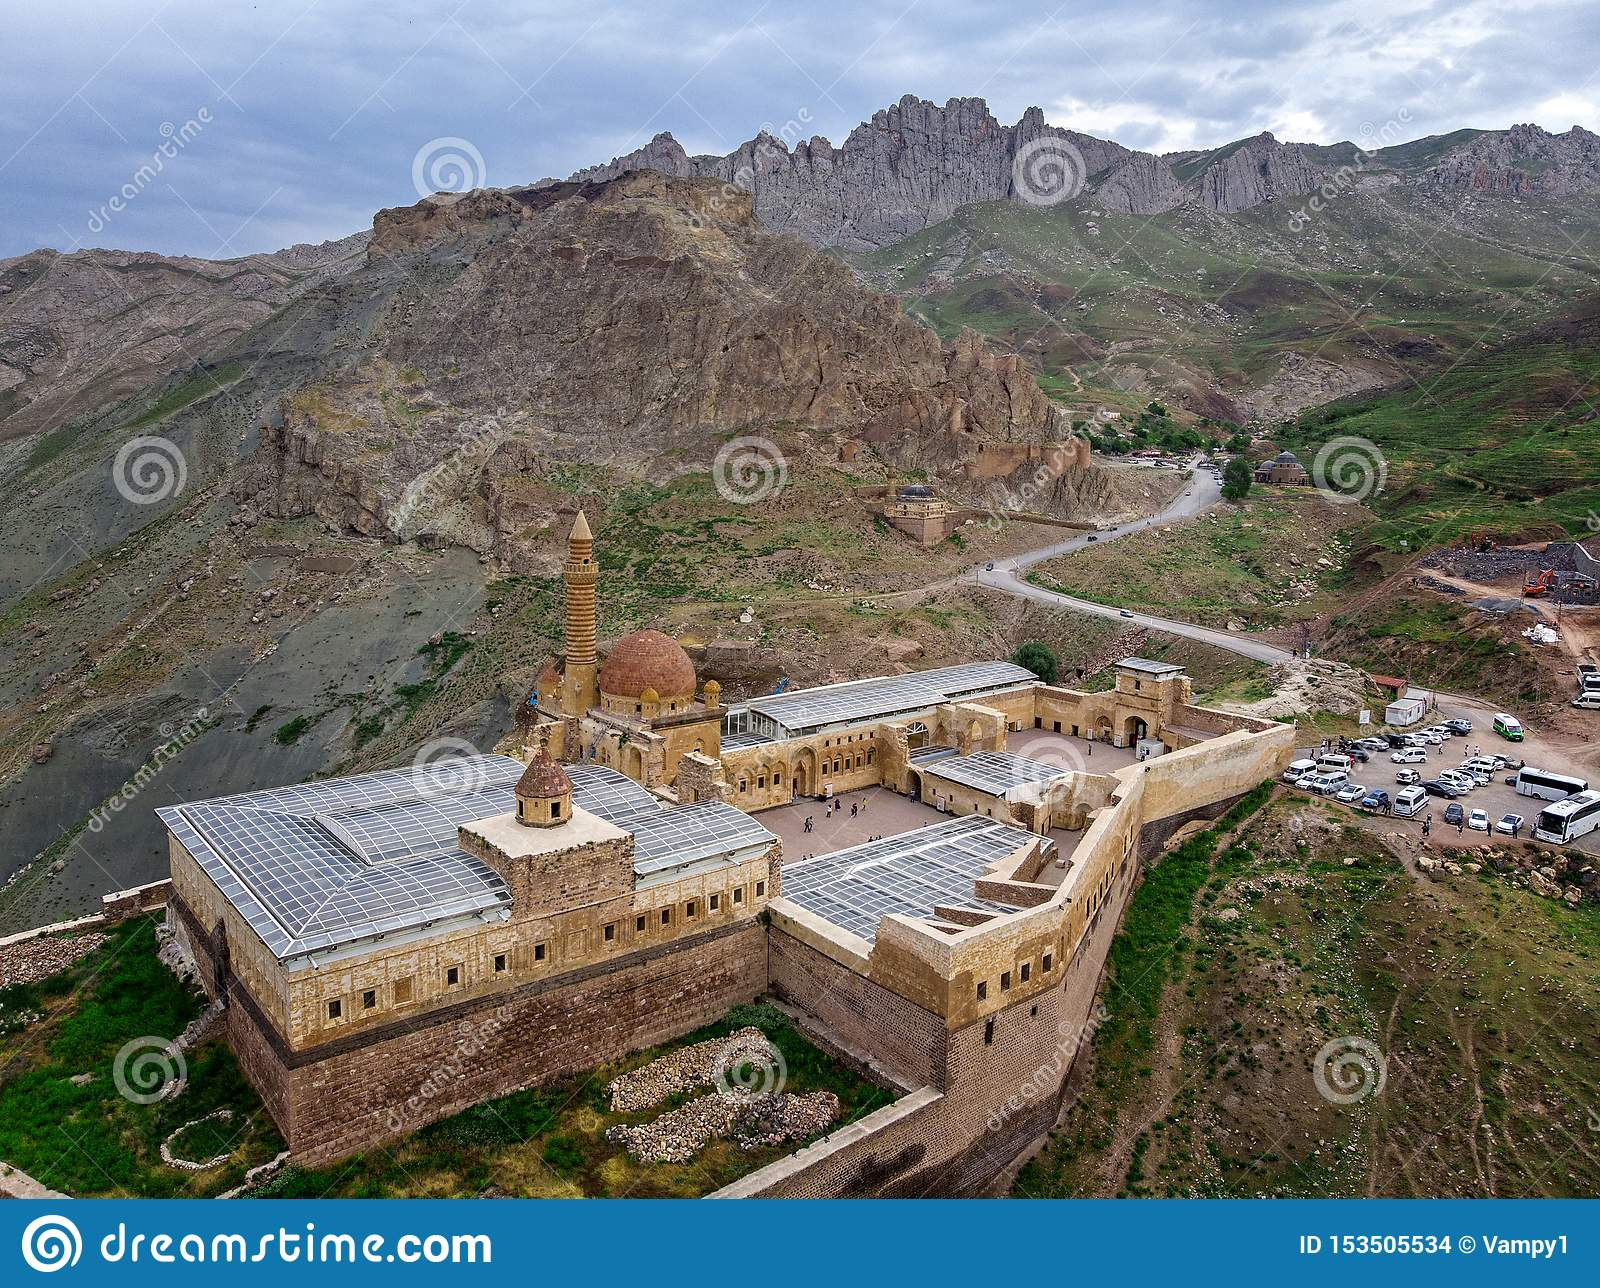 Aerial view of Ishak Pasha Palace is a semi-ruined palace and administrative complex located in the Dogubeyazit, Agri. Turkey